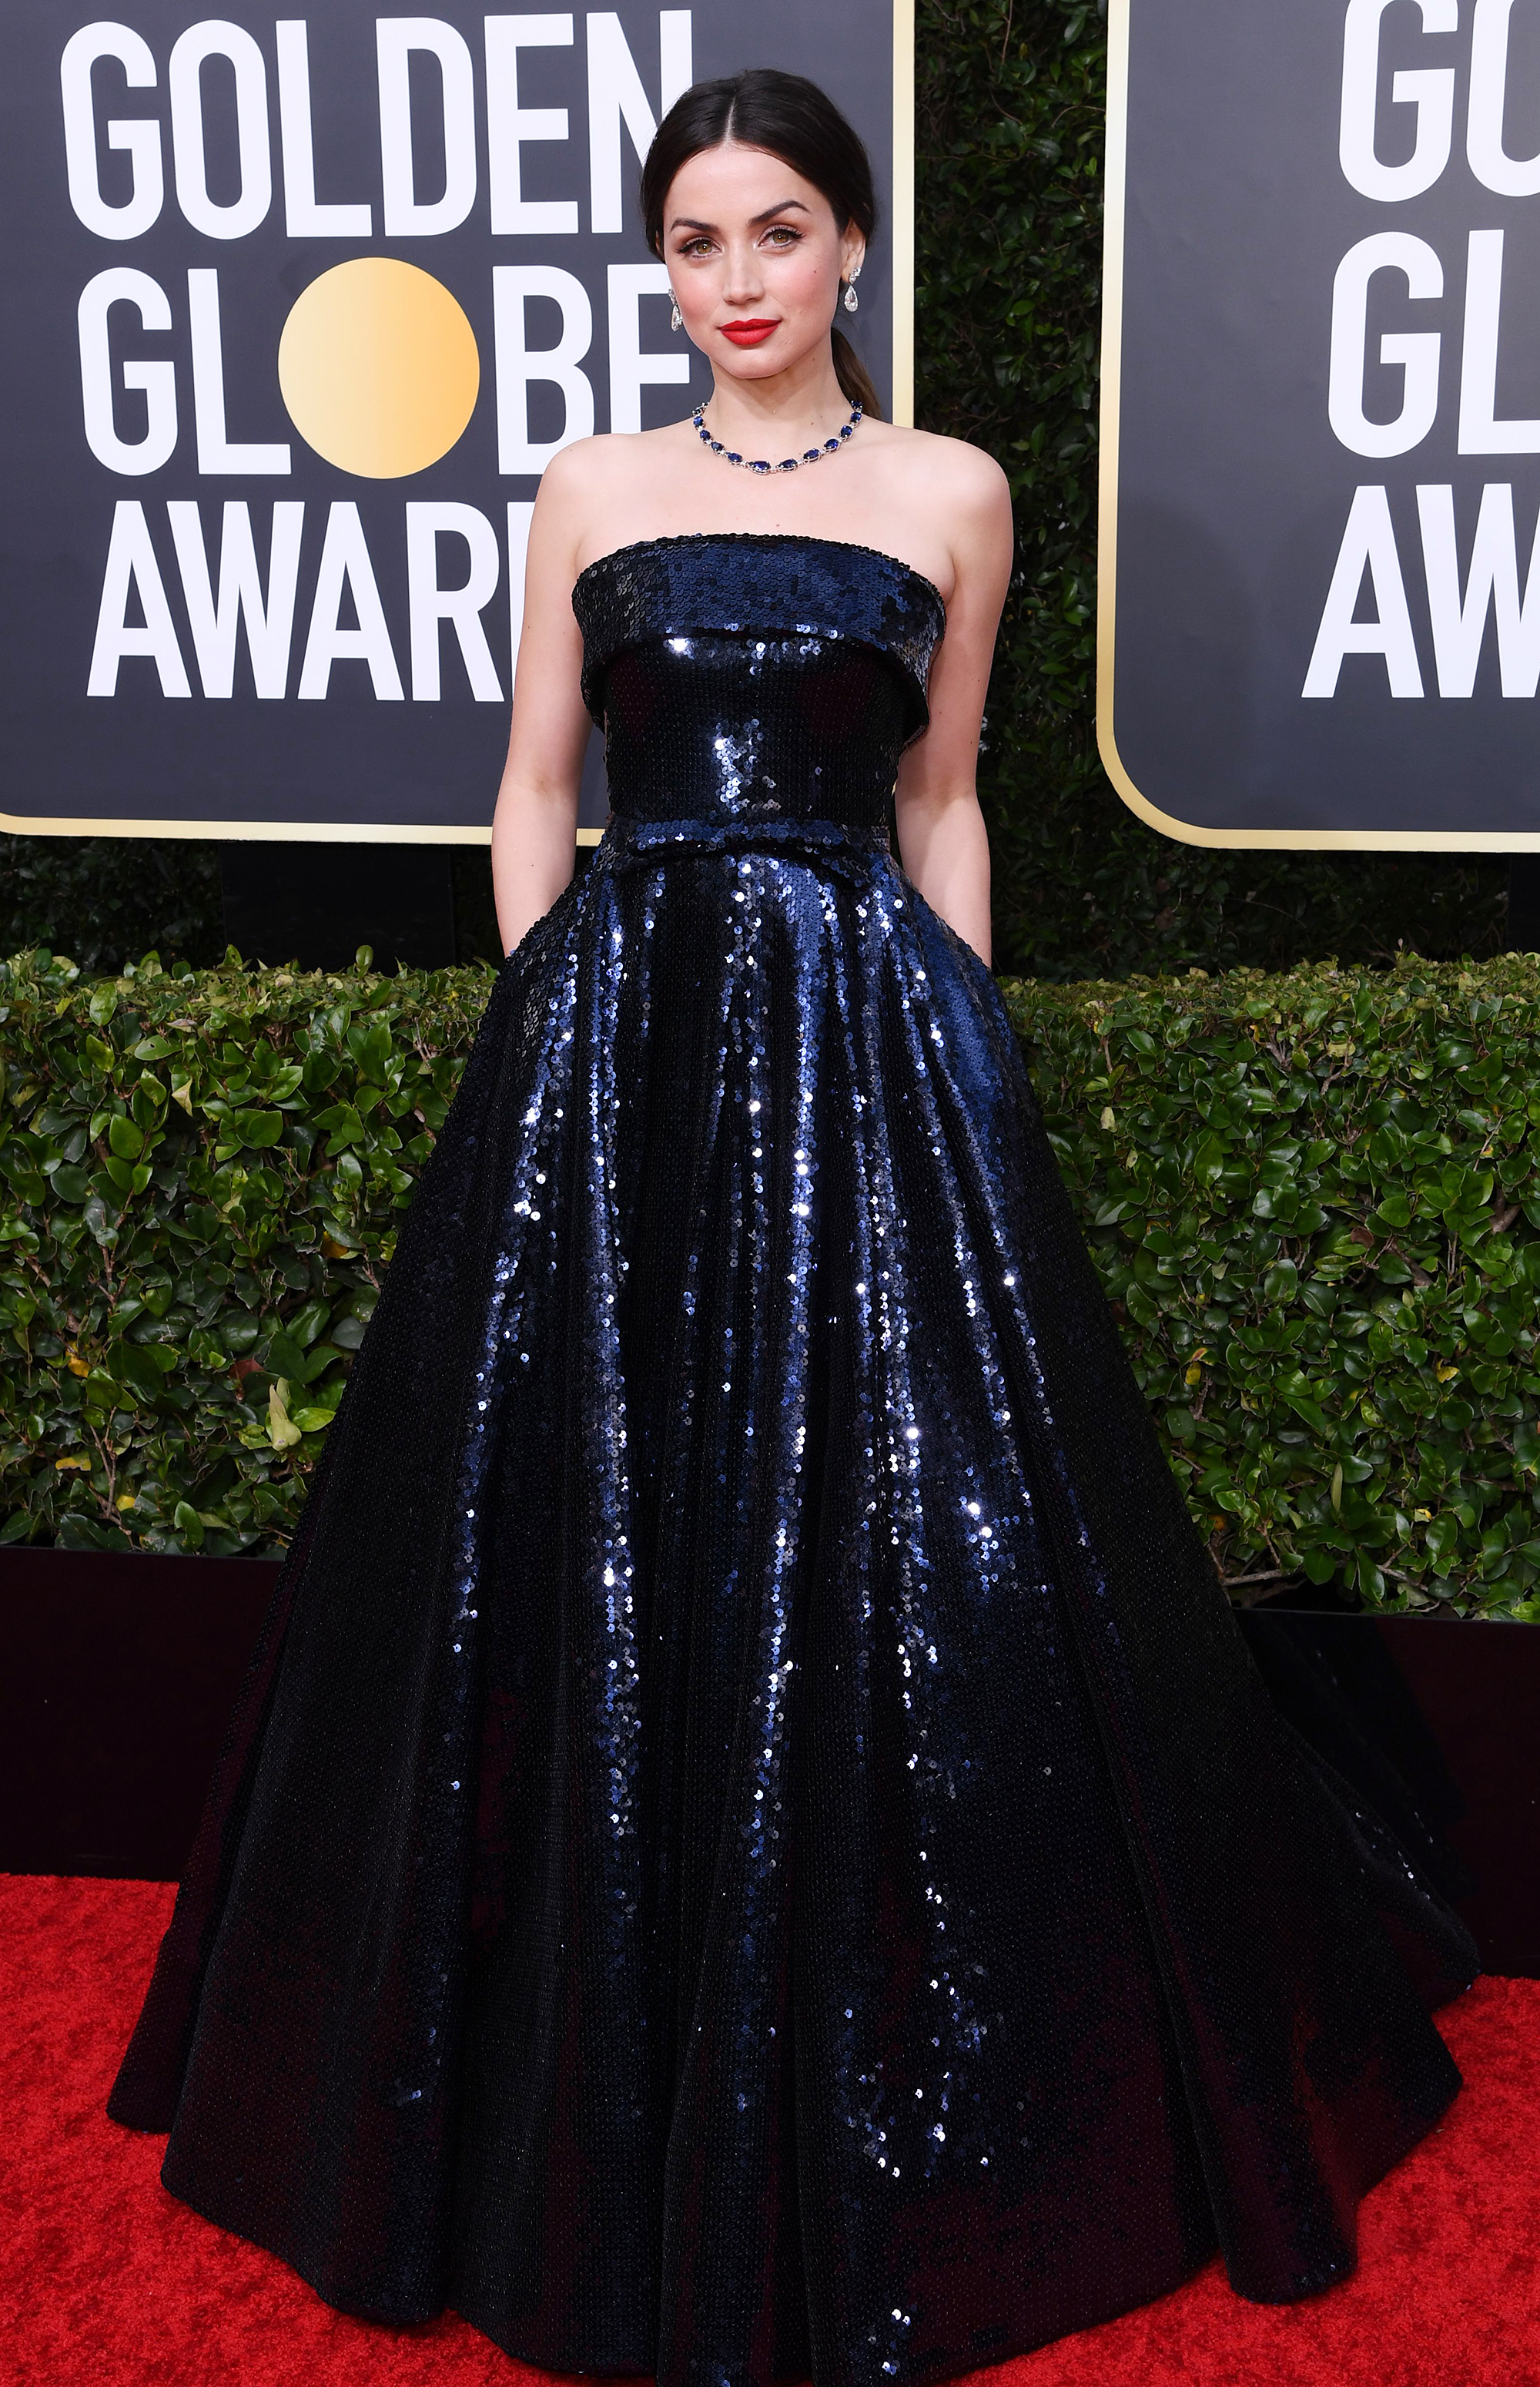 Golden Globes 2020 Red Carpet Fashion See Celeb Dresses Gowns